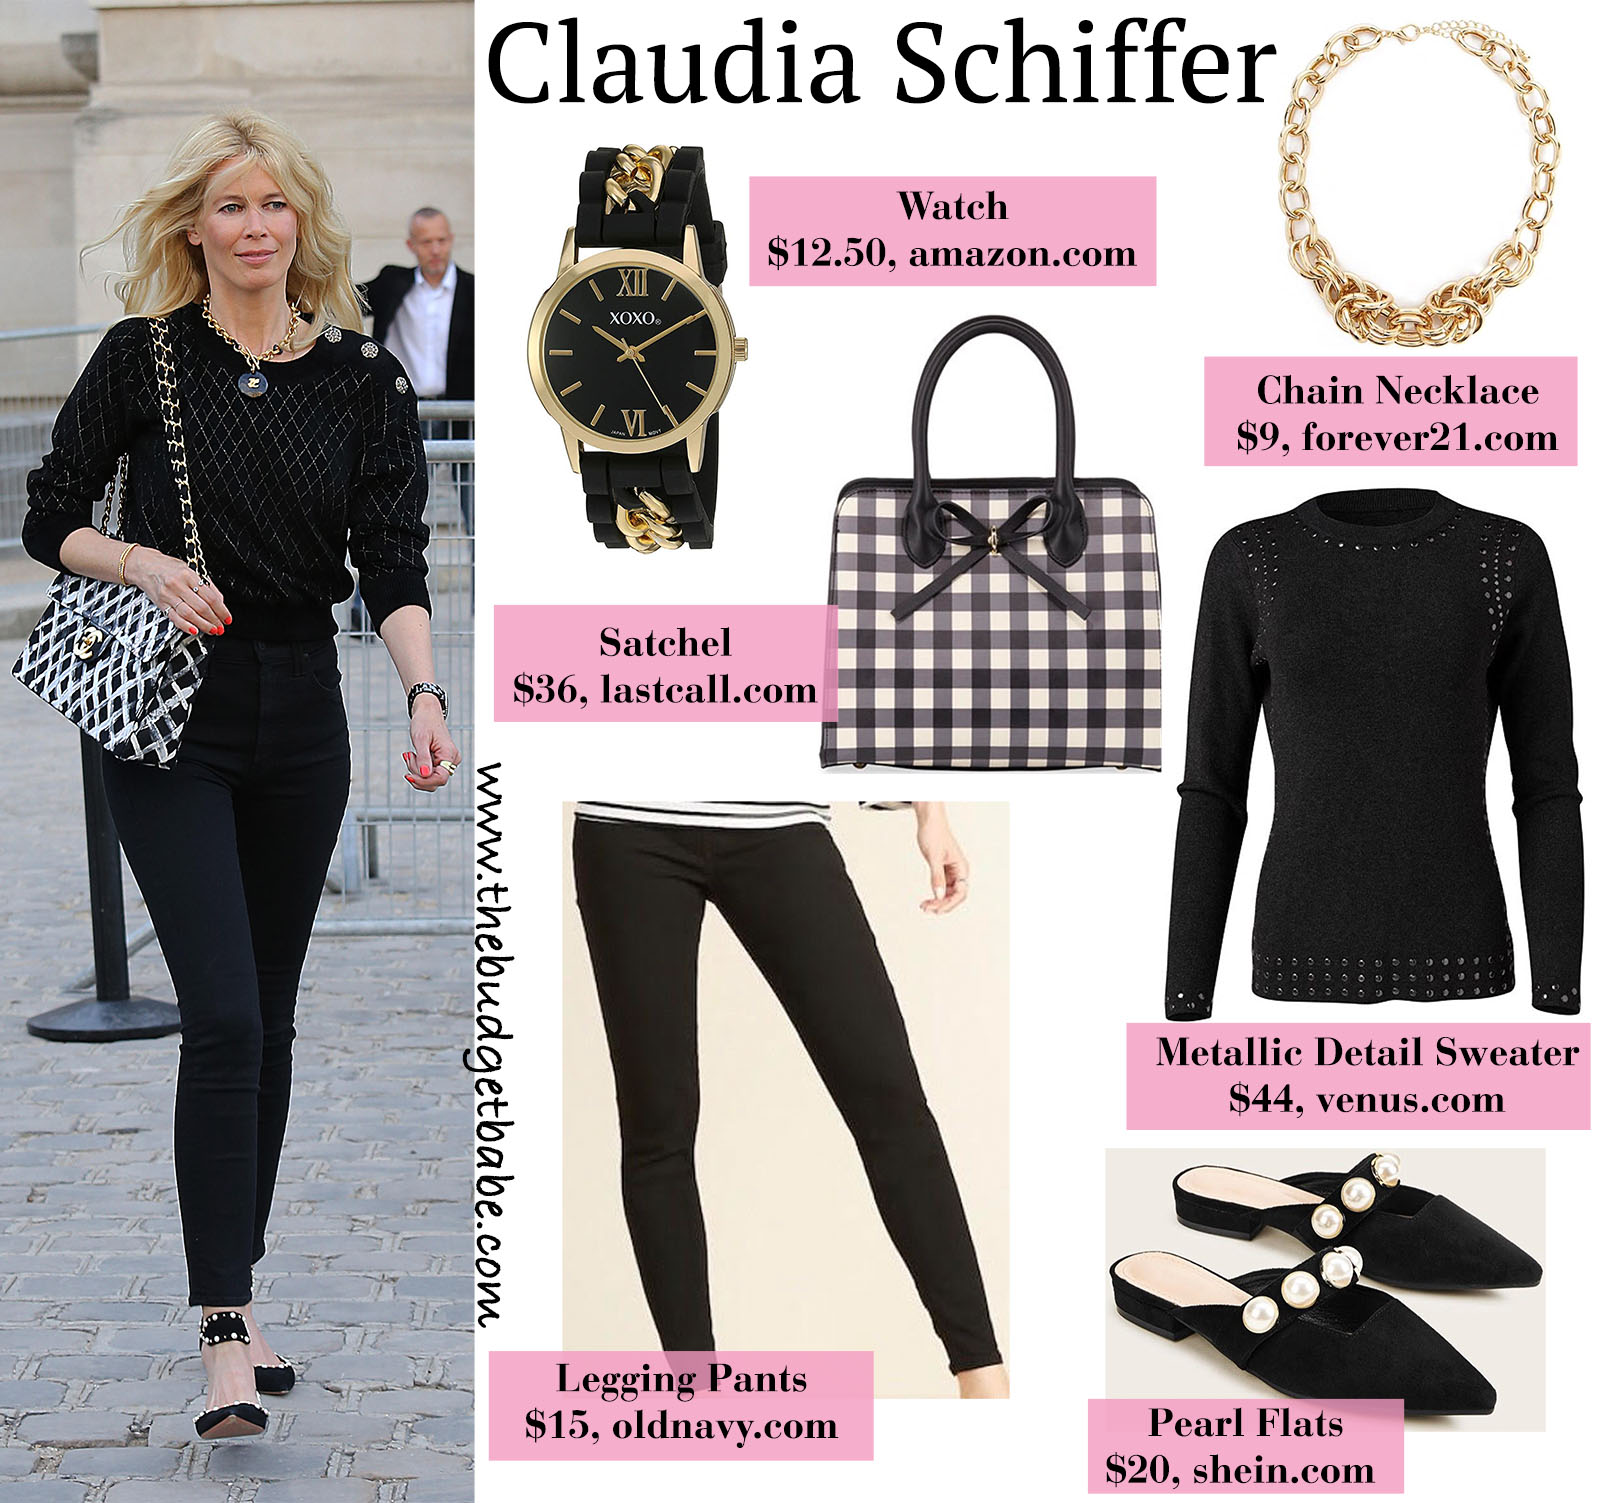 Claudia Schiffer stuns in Chanel accessories and all black outfit!